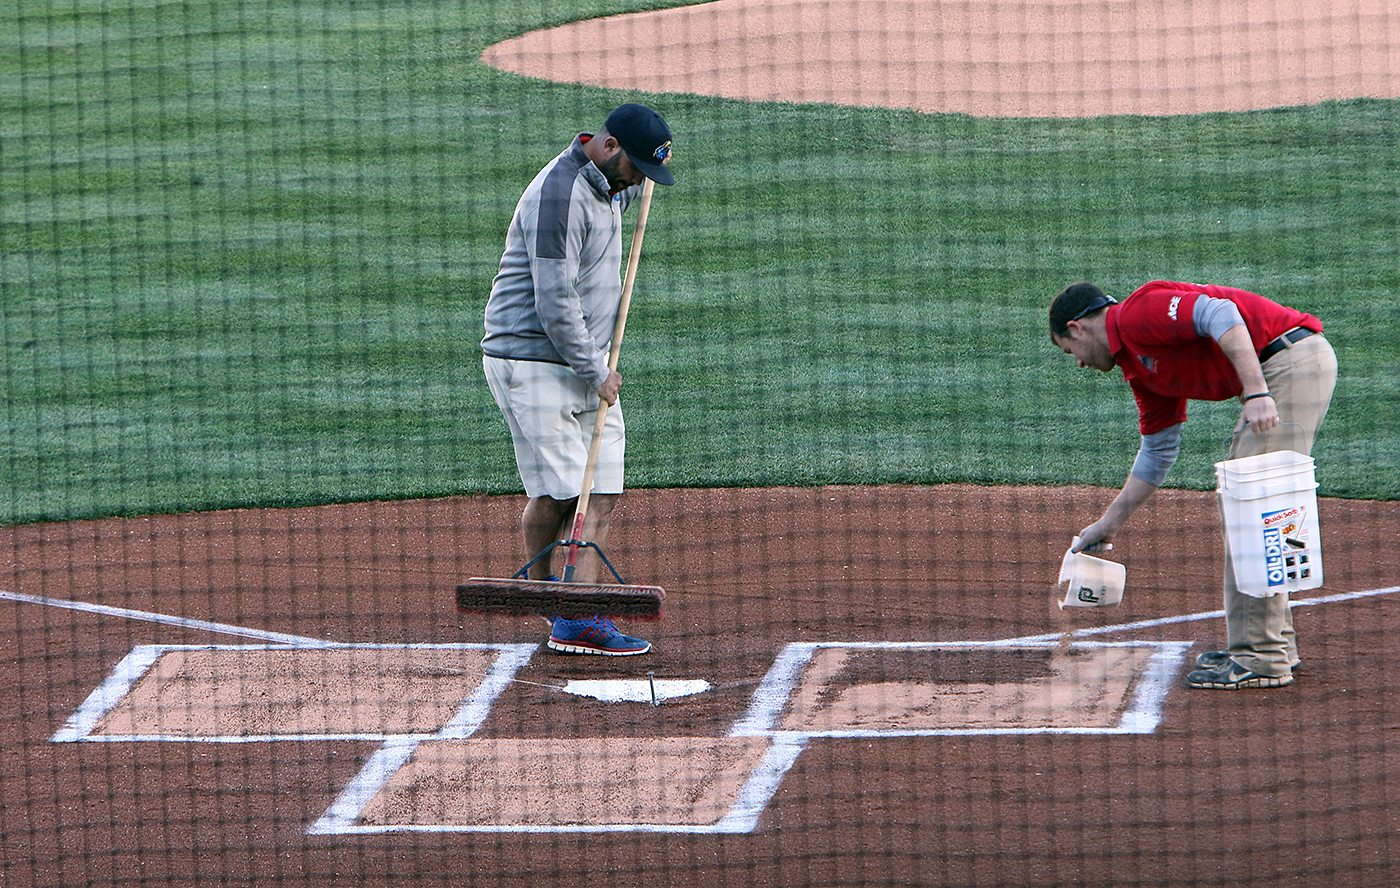 Members of the grounds crew prepare the batter's box for a game between the Trenton and Portland Sea Dogs at Arm & Hammer Park in Trenton on Tuesday, April 12, 2016. Photo by Martin Griff